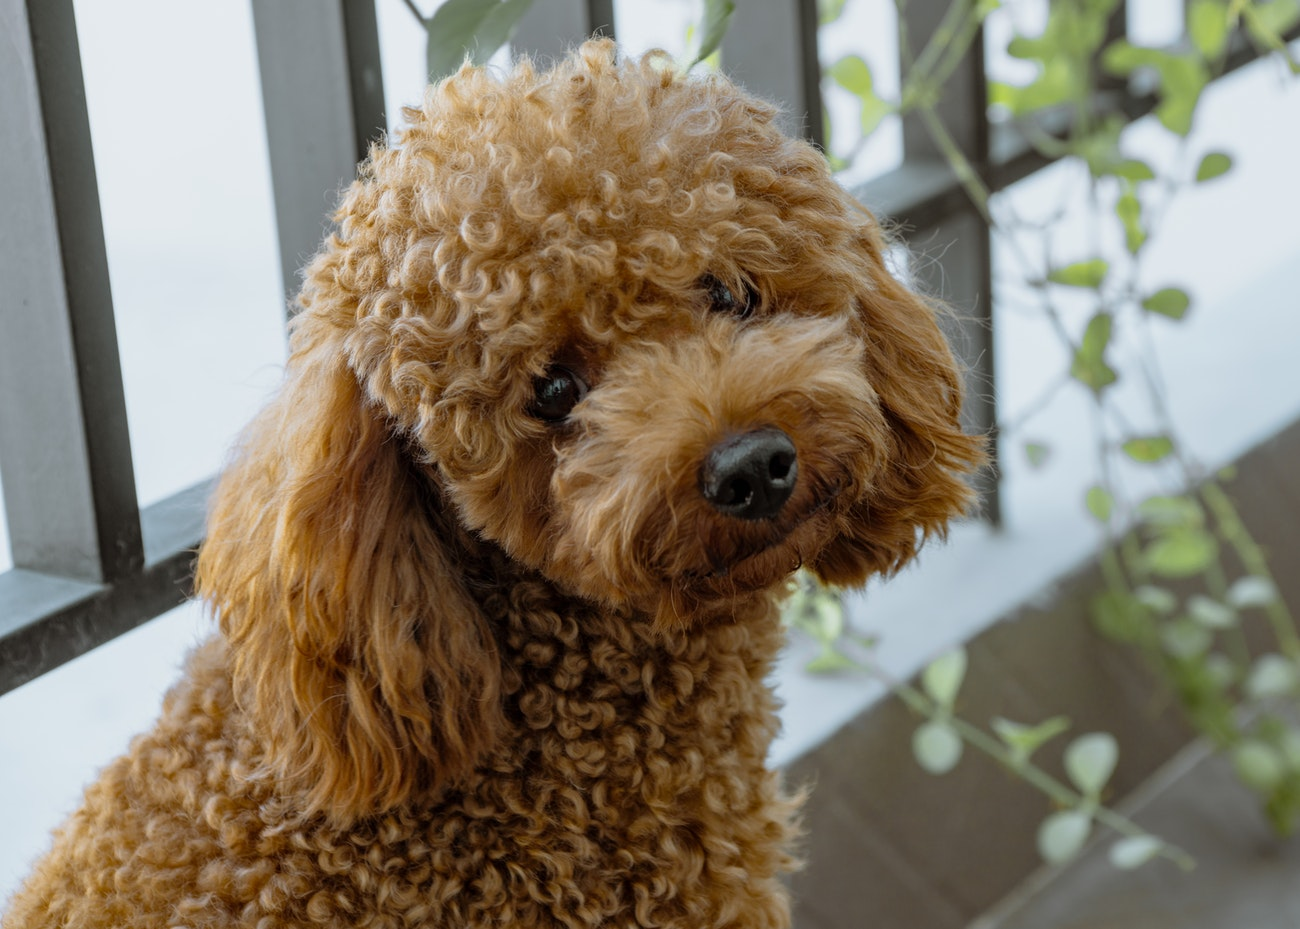 Does Your Poodle Need a Haircut?